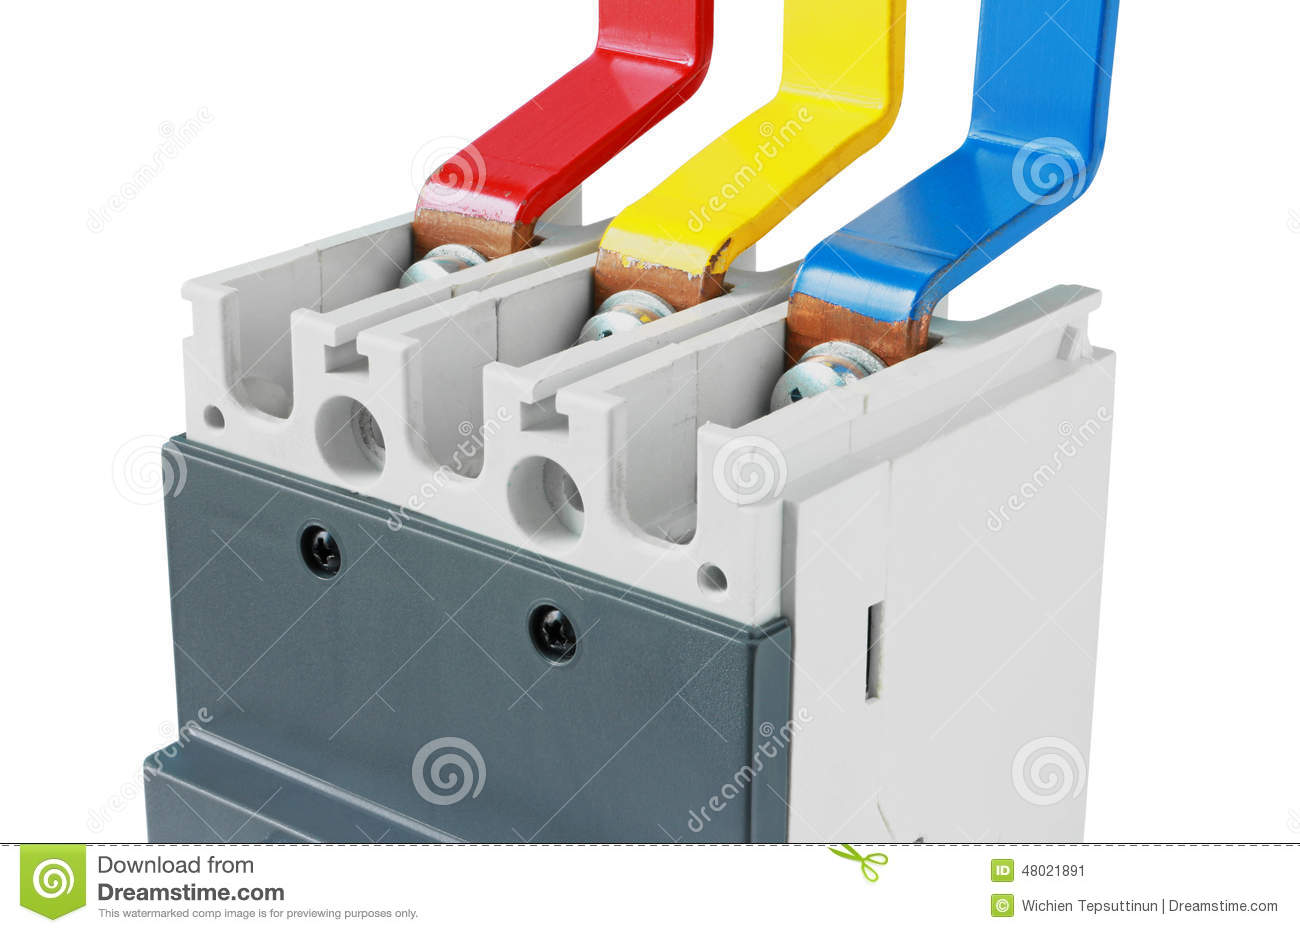 Breakers also Stock Photo Copper Busbar Connection Circuit Breaker Isolated White Backg Painted Connected To Background Image48021891 also Winbreak1 Moulded Case Circuit Breakers Mccb furthermore 4 8102110 44535 moreover Miniature Circuit Breakers Mcb Types Characteristic Curves. on electric circuit breaker